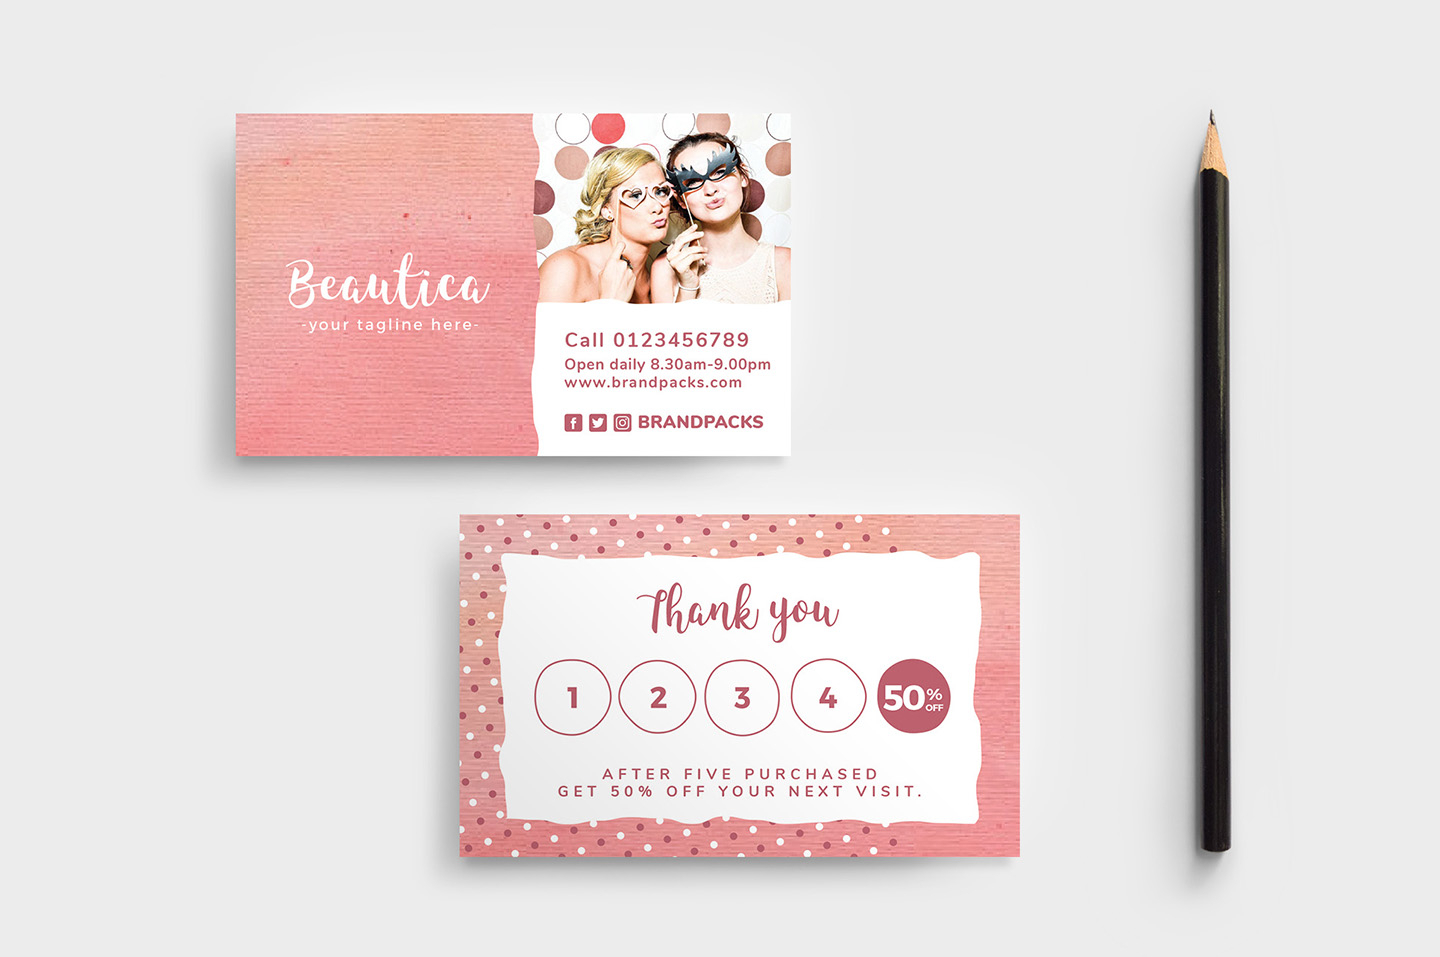 Free Loyalty Card Templates - Psd, Ai & Vector - Brandpacks With Membership Card Template Free